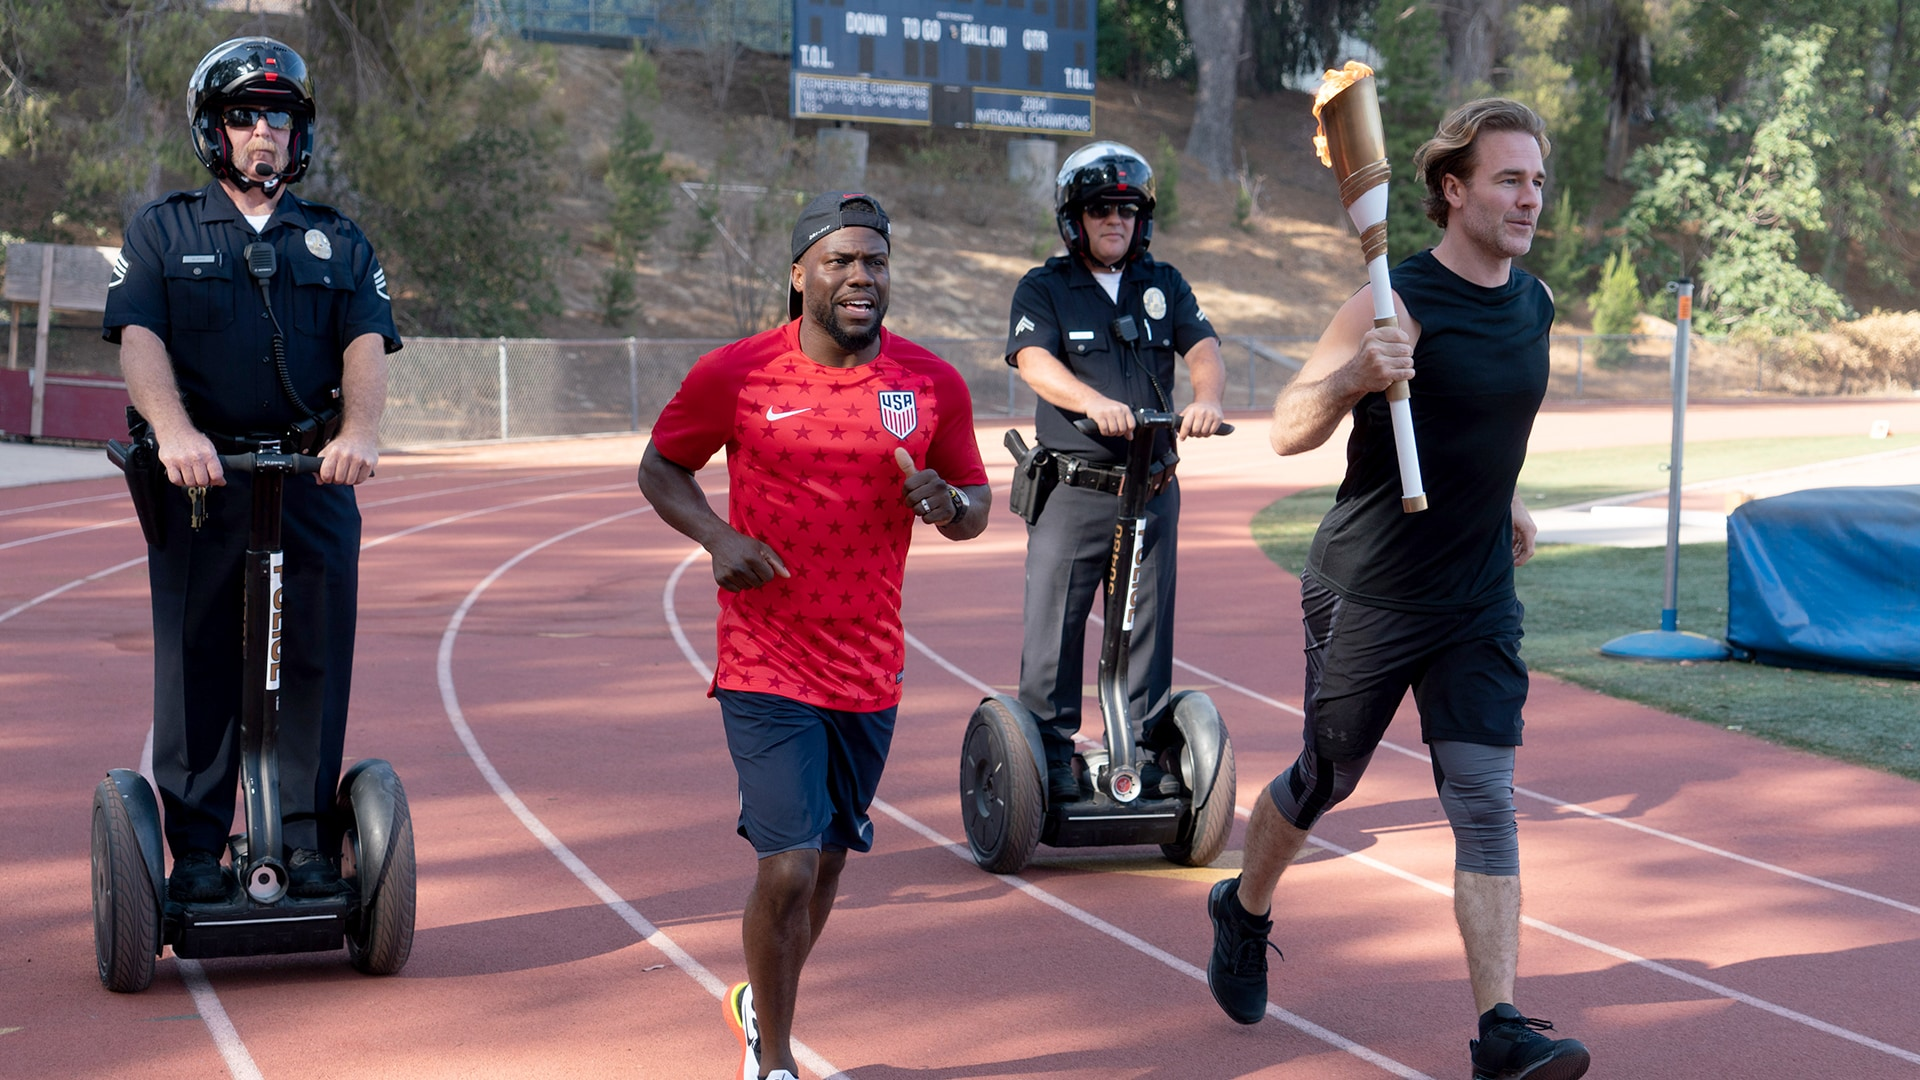 Track and Field with James Van Der Beek and Kevin Hart